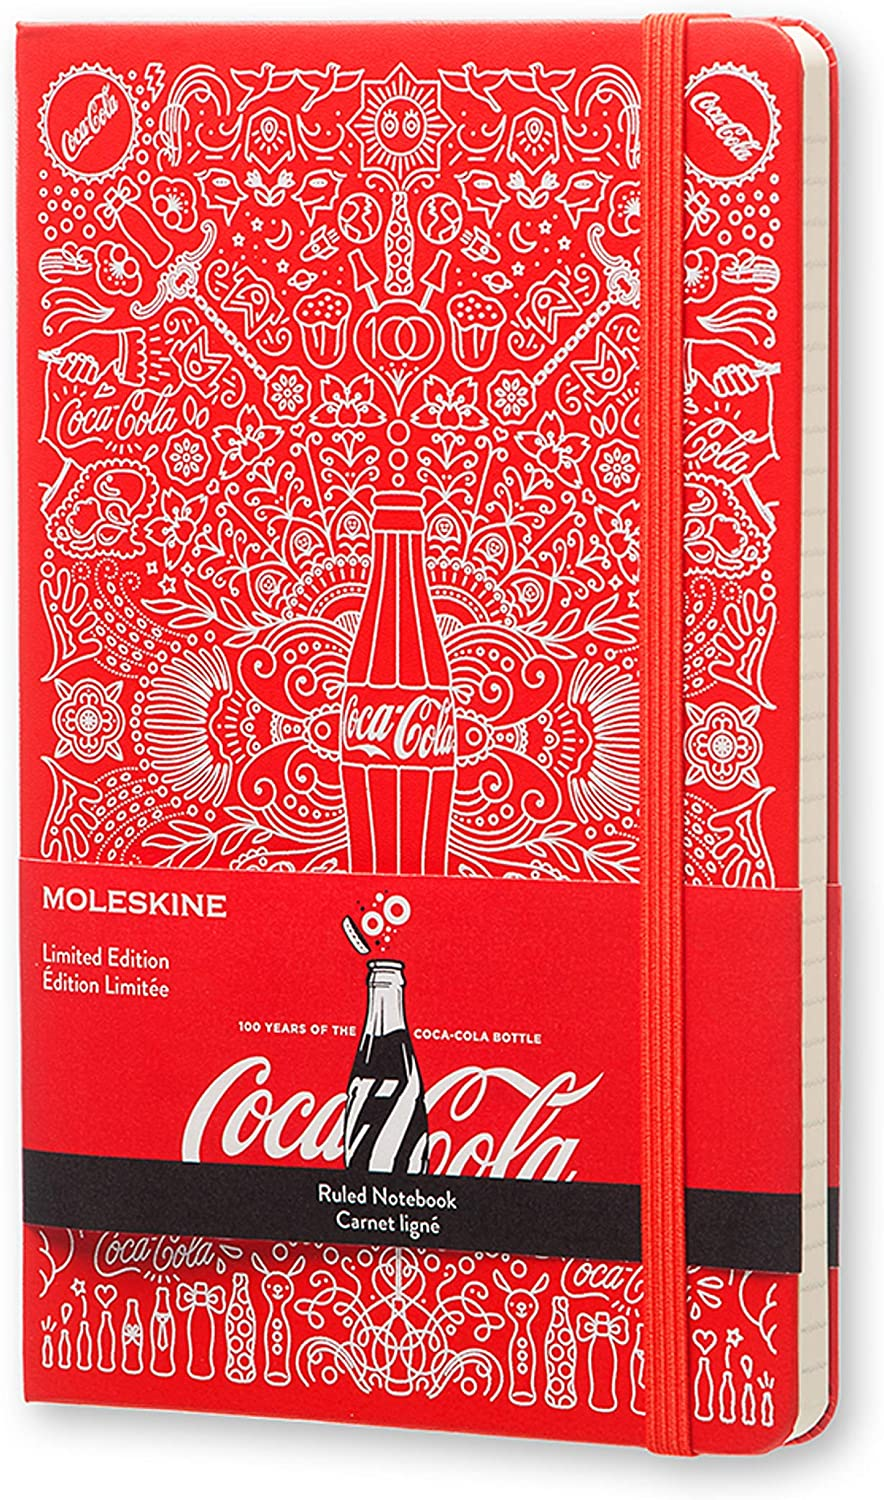 Moleskine Coke Limited Edition 2015 Notebook Large Hard Rule Super beauty product Courier shipping free shipping restock quality top Cov